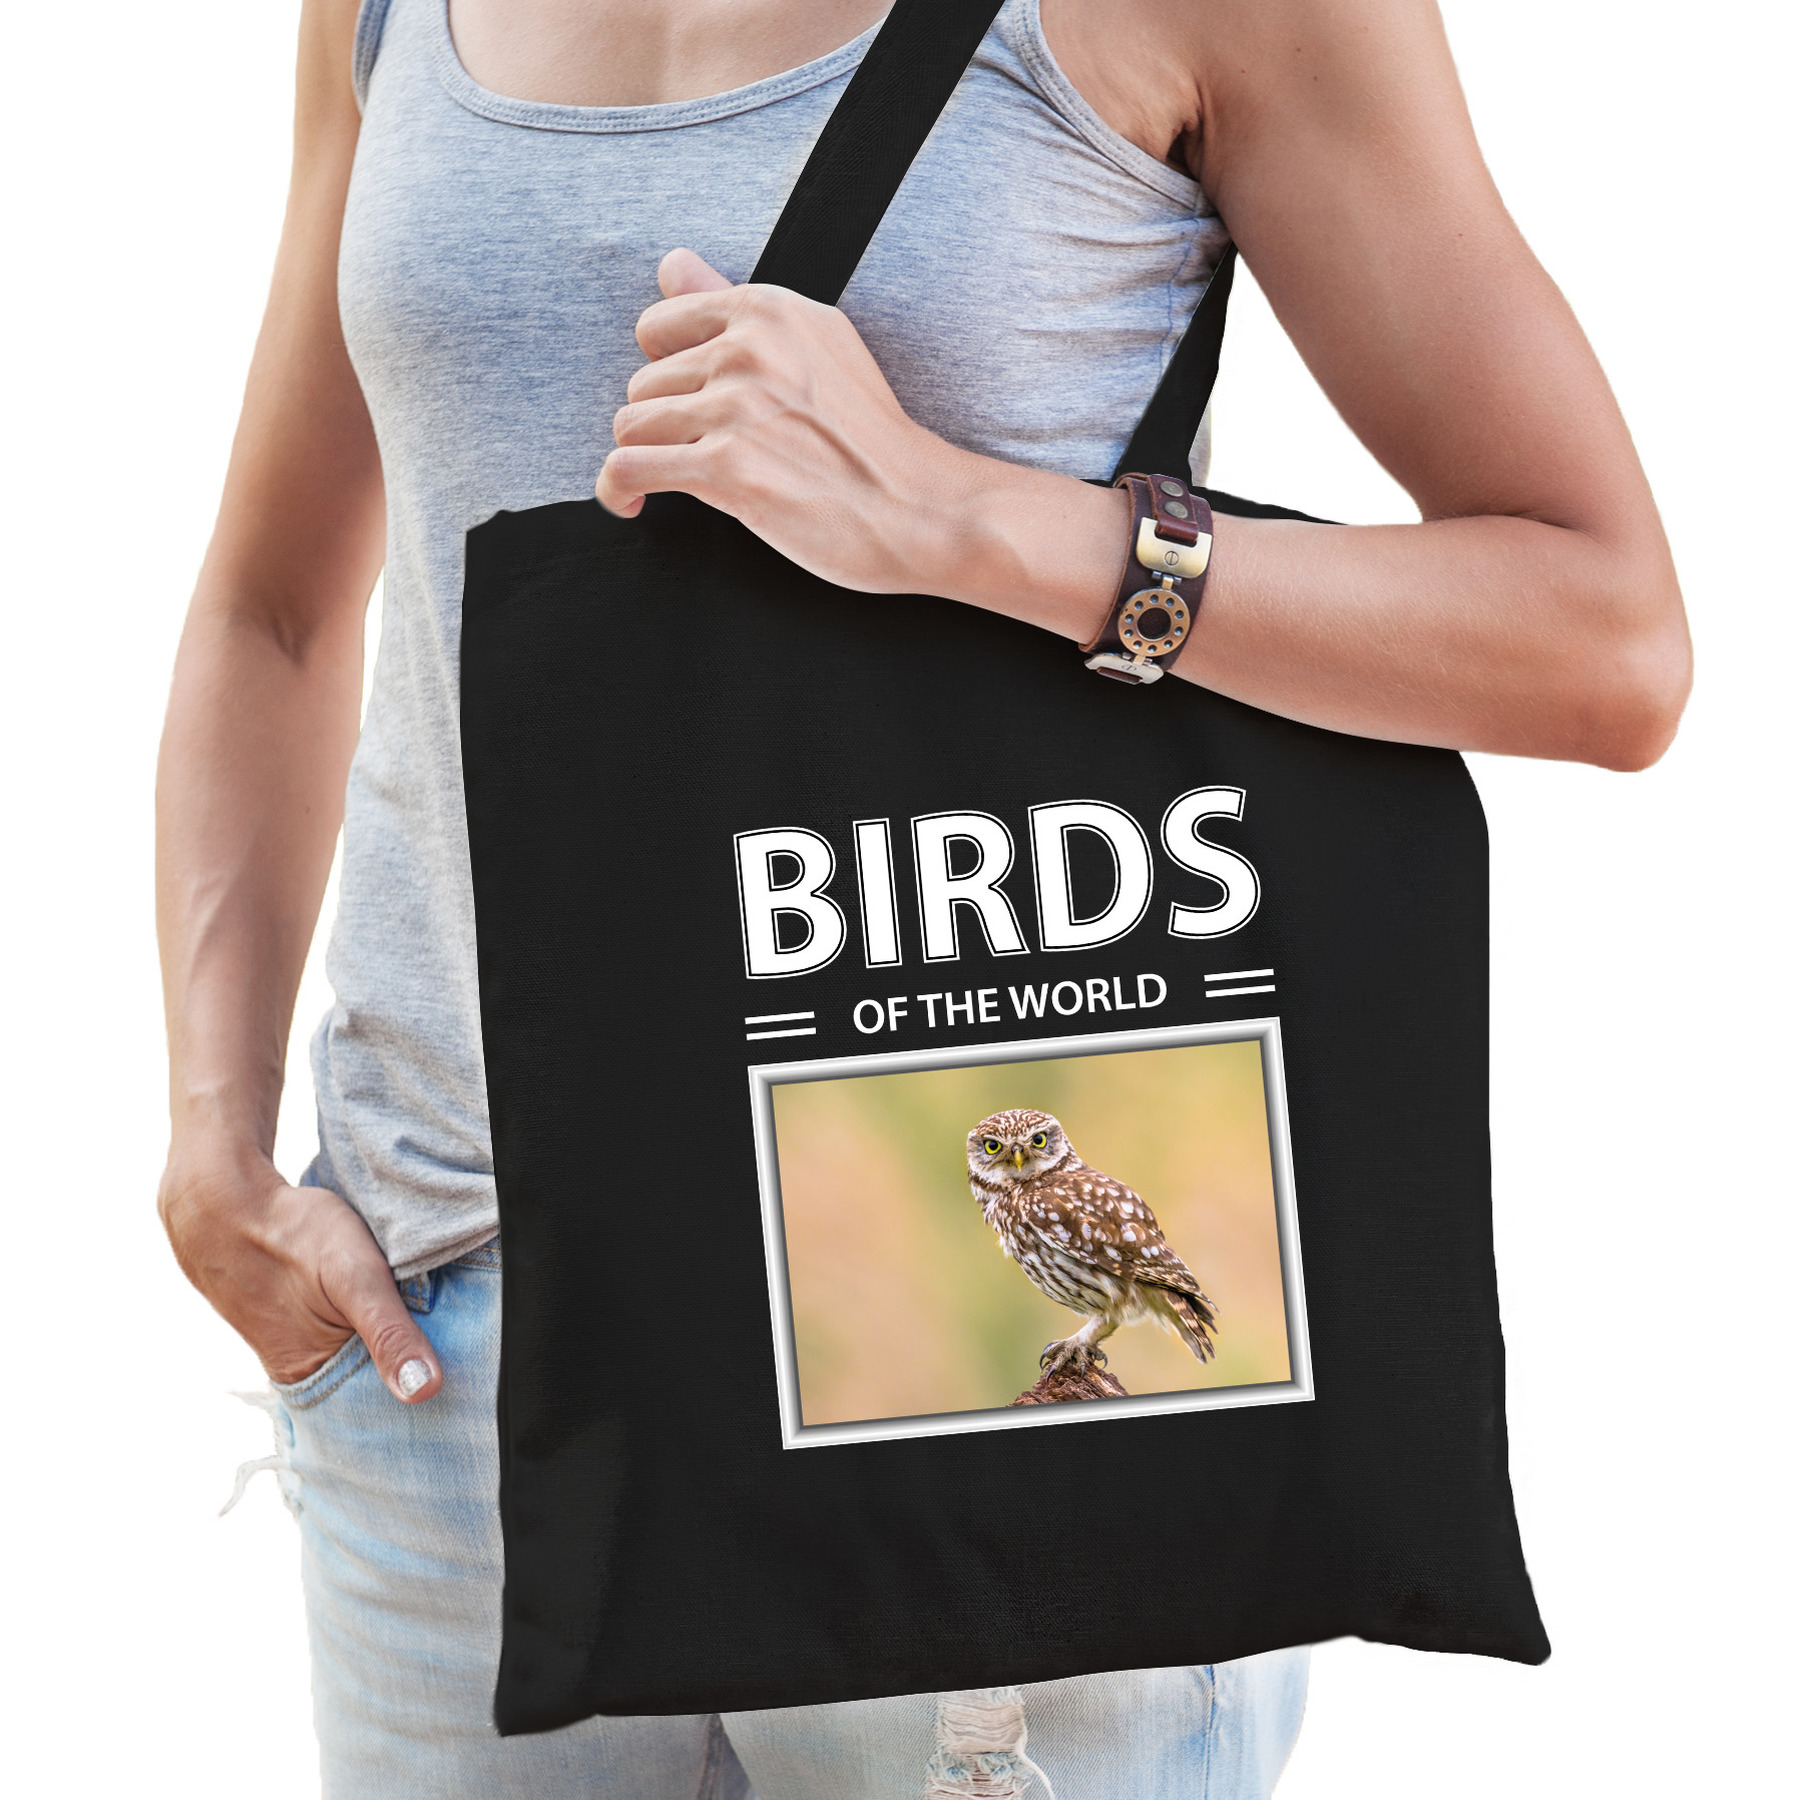 Katoenen tasje Steenuilen zwart - birds of the world Steenuil cadeau tas